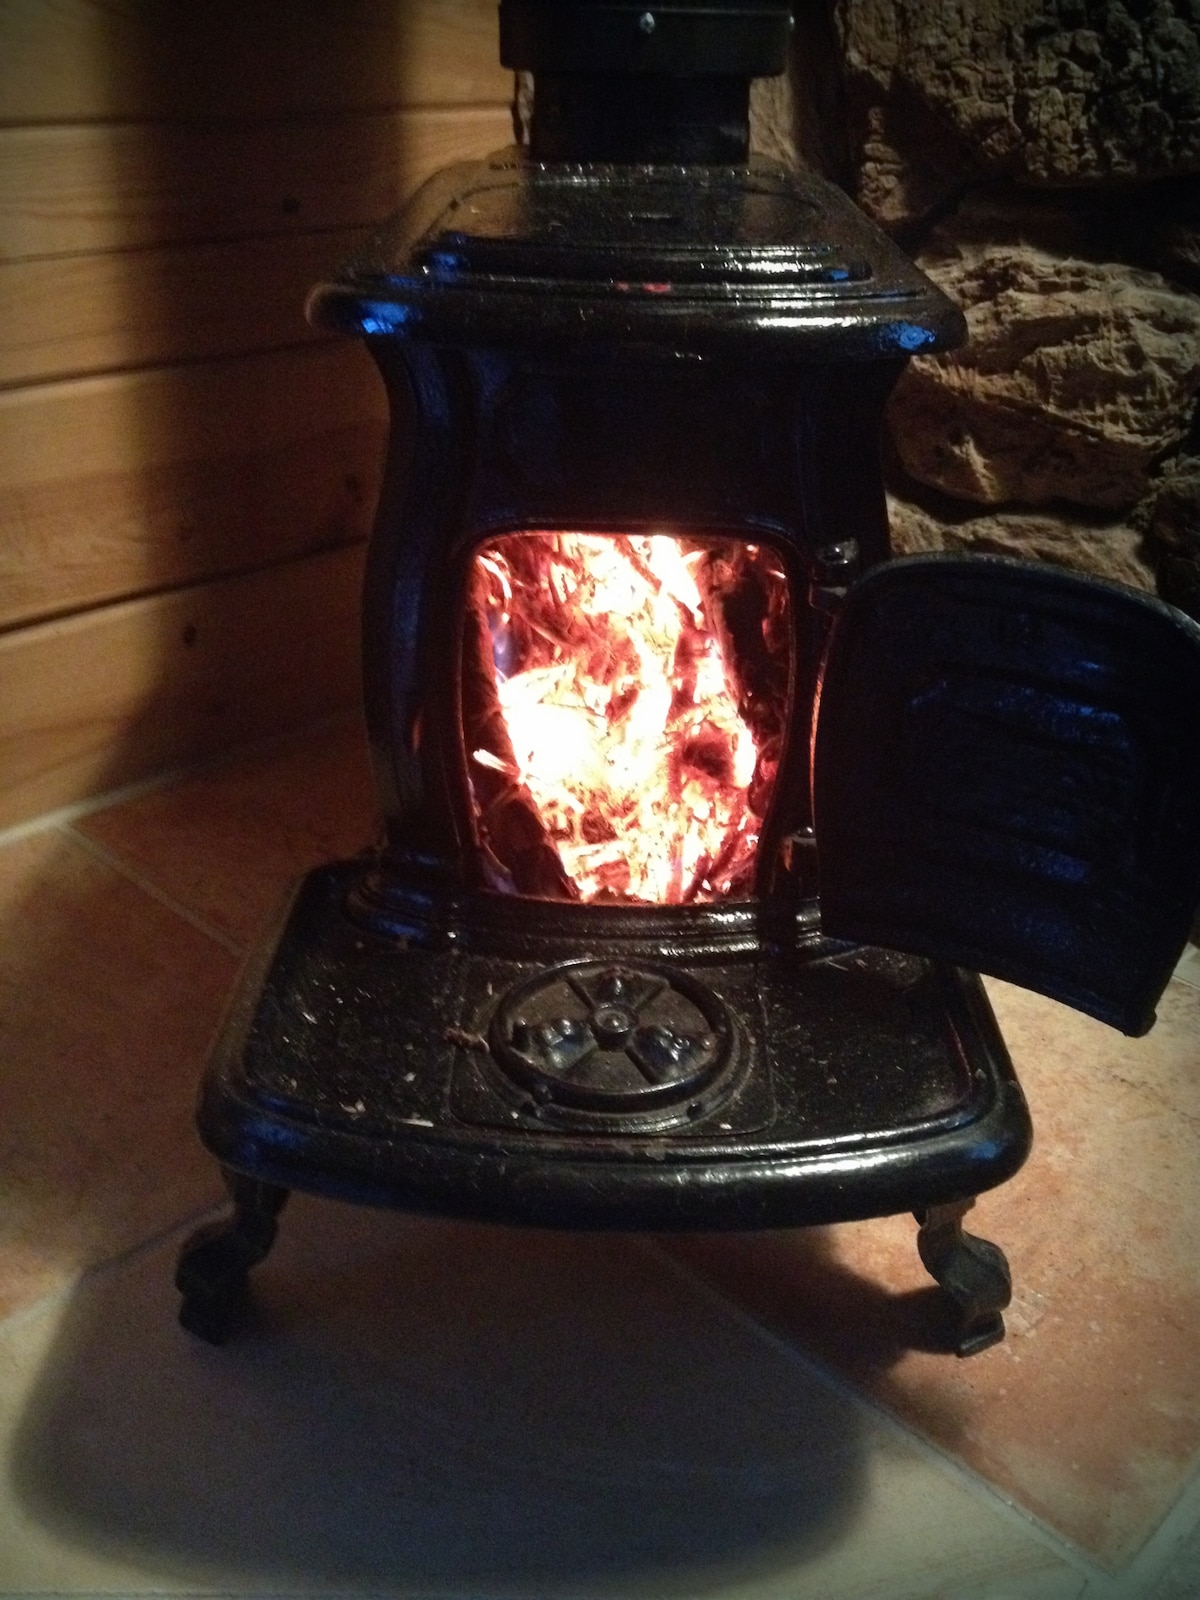 Old-fashioned wood stove for fires on chilly nights.